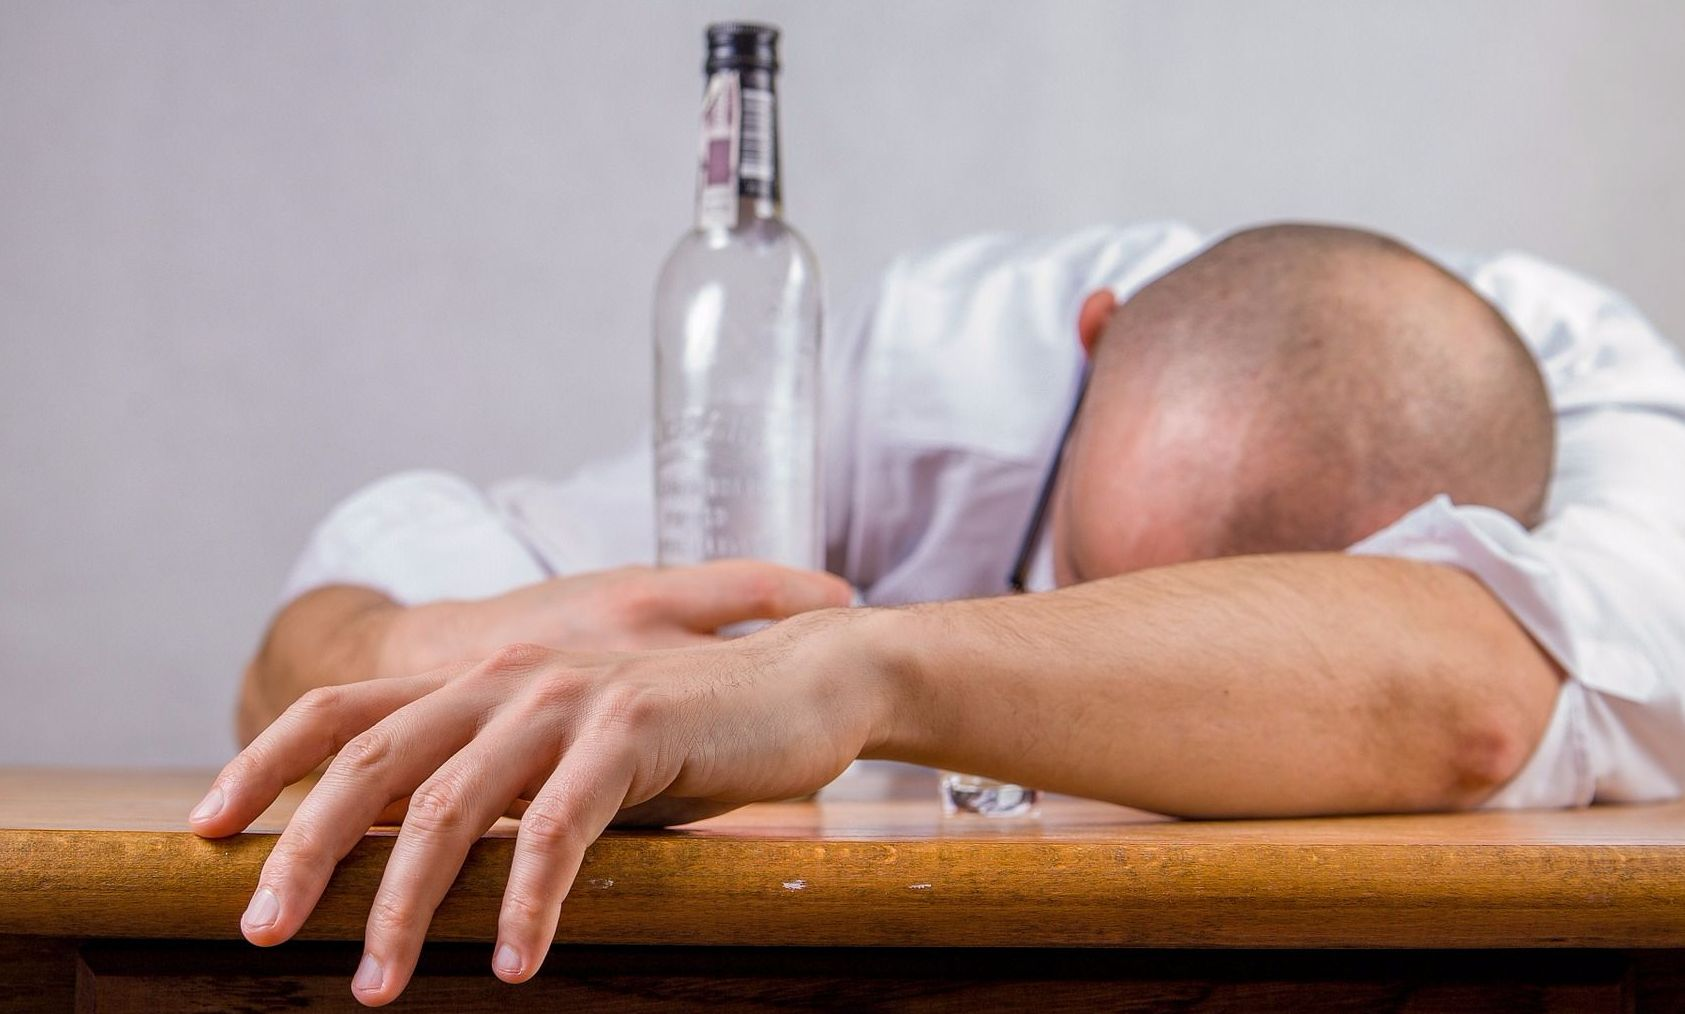 Alcoholism can be defeated using stem cells